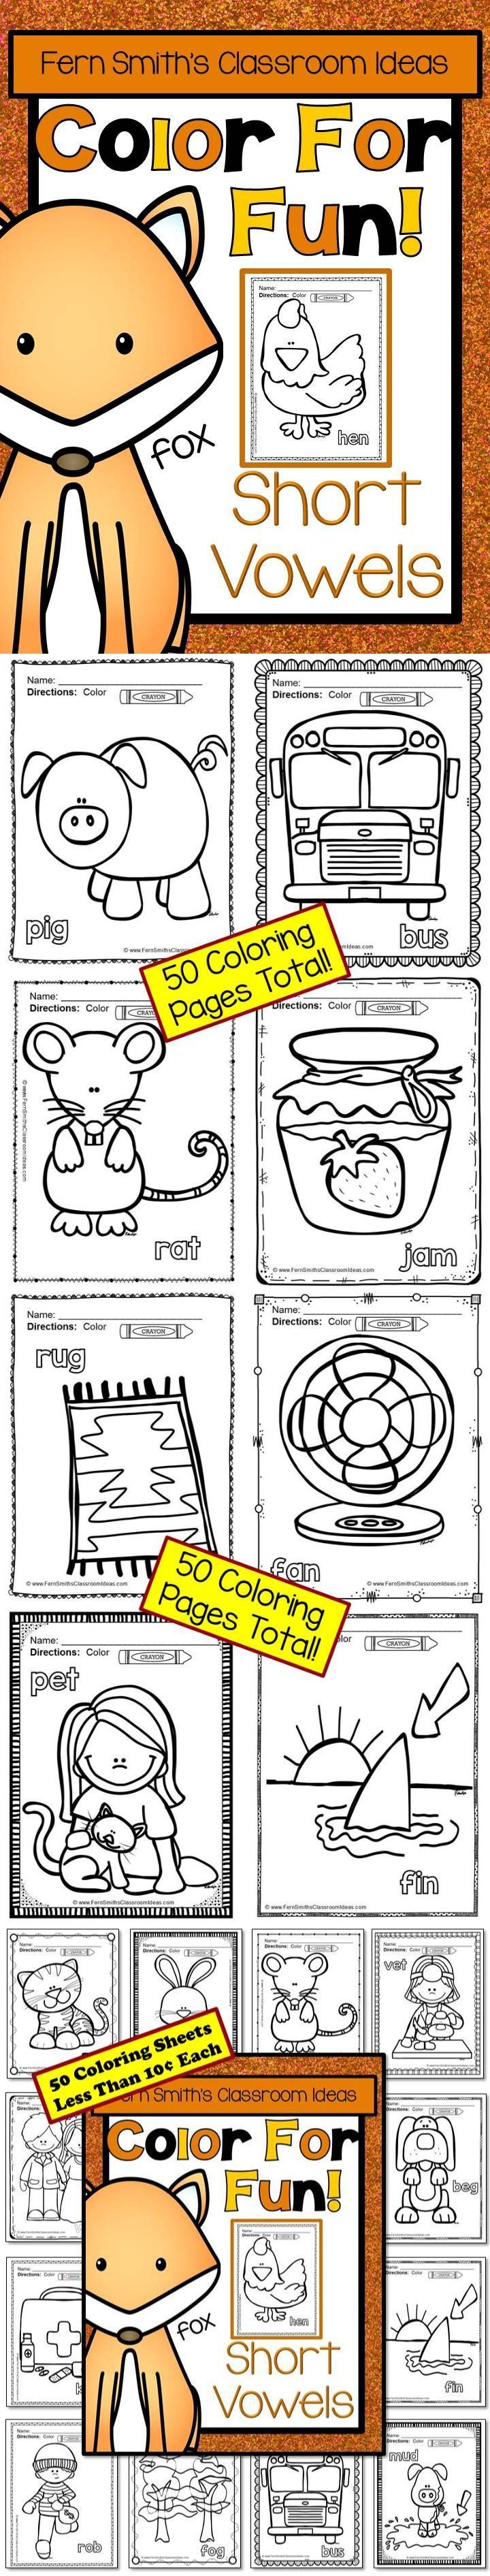 Coloring Pages for Short Vowels - 50 Pages of Short Vowel Coloring ...